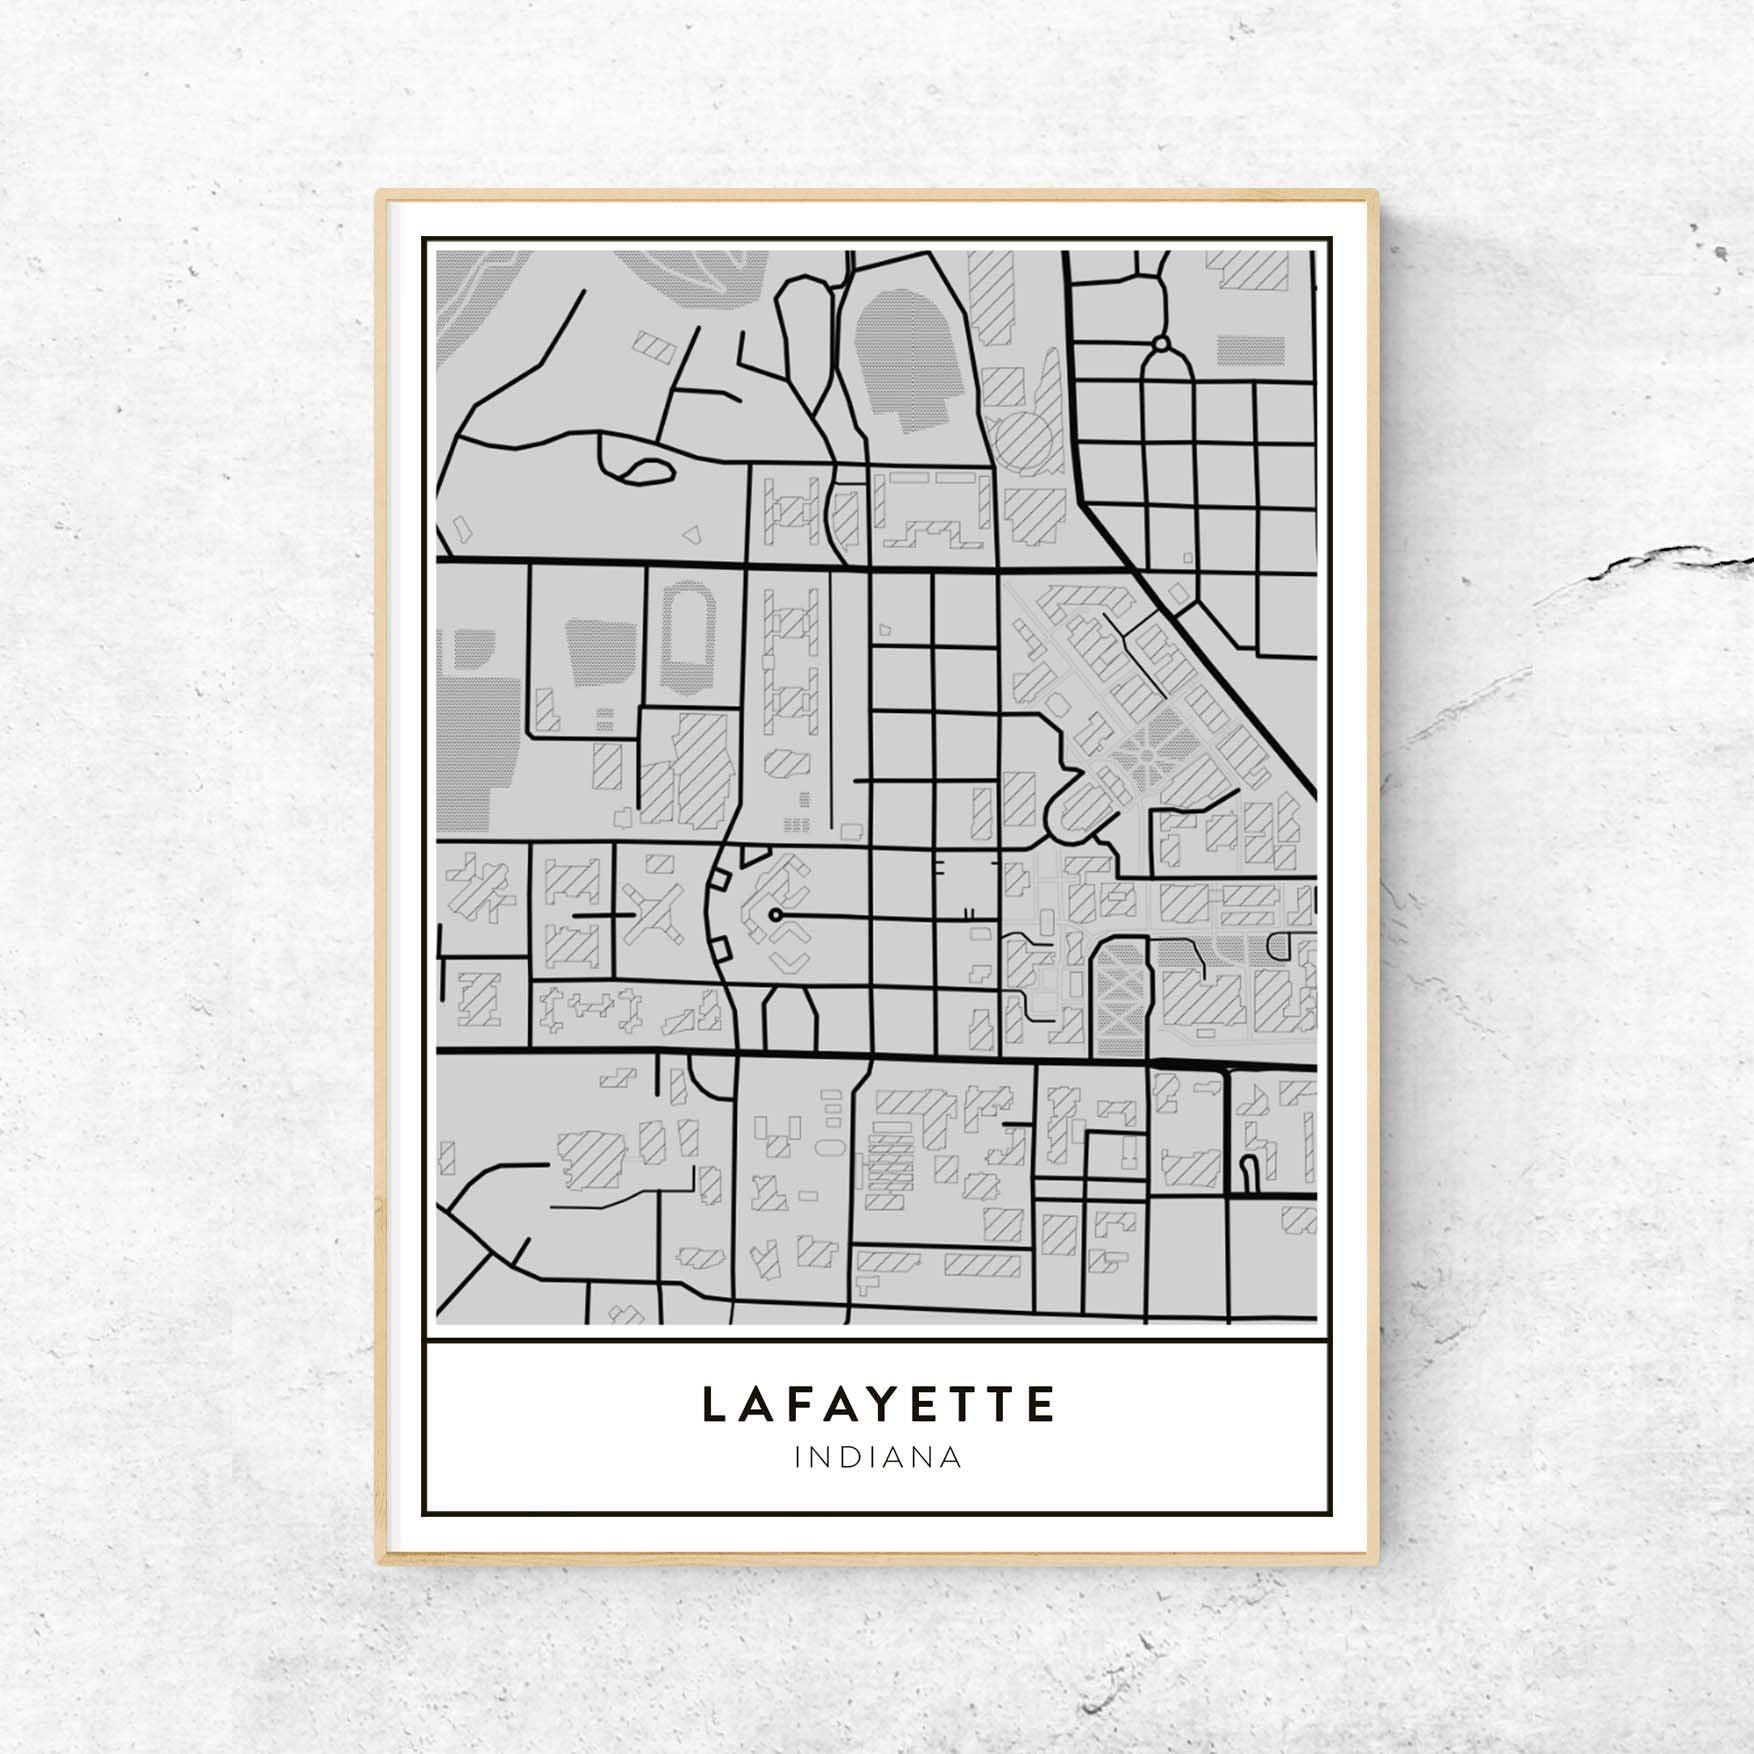 University Of Louisiana At Lafayette Campus Map.Golden Gate Design Co Custom Map Art Prints Of Your Favorite City